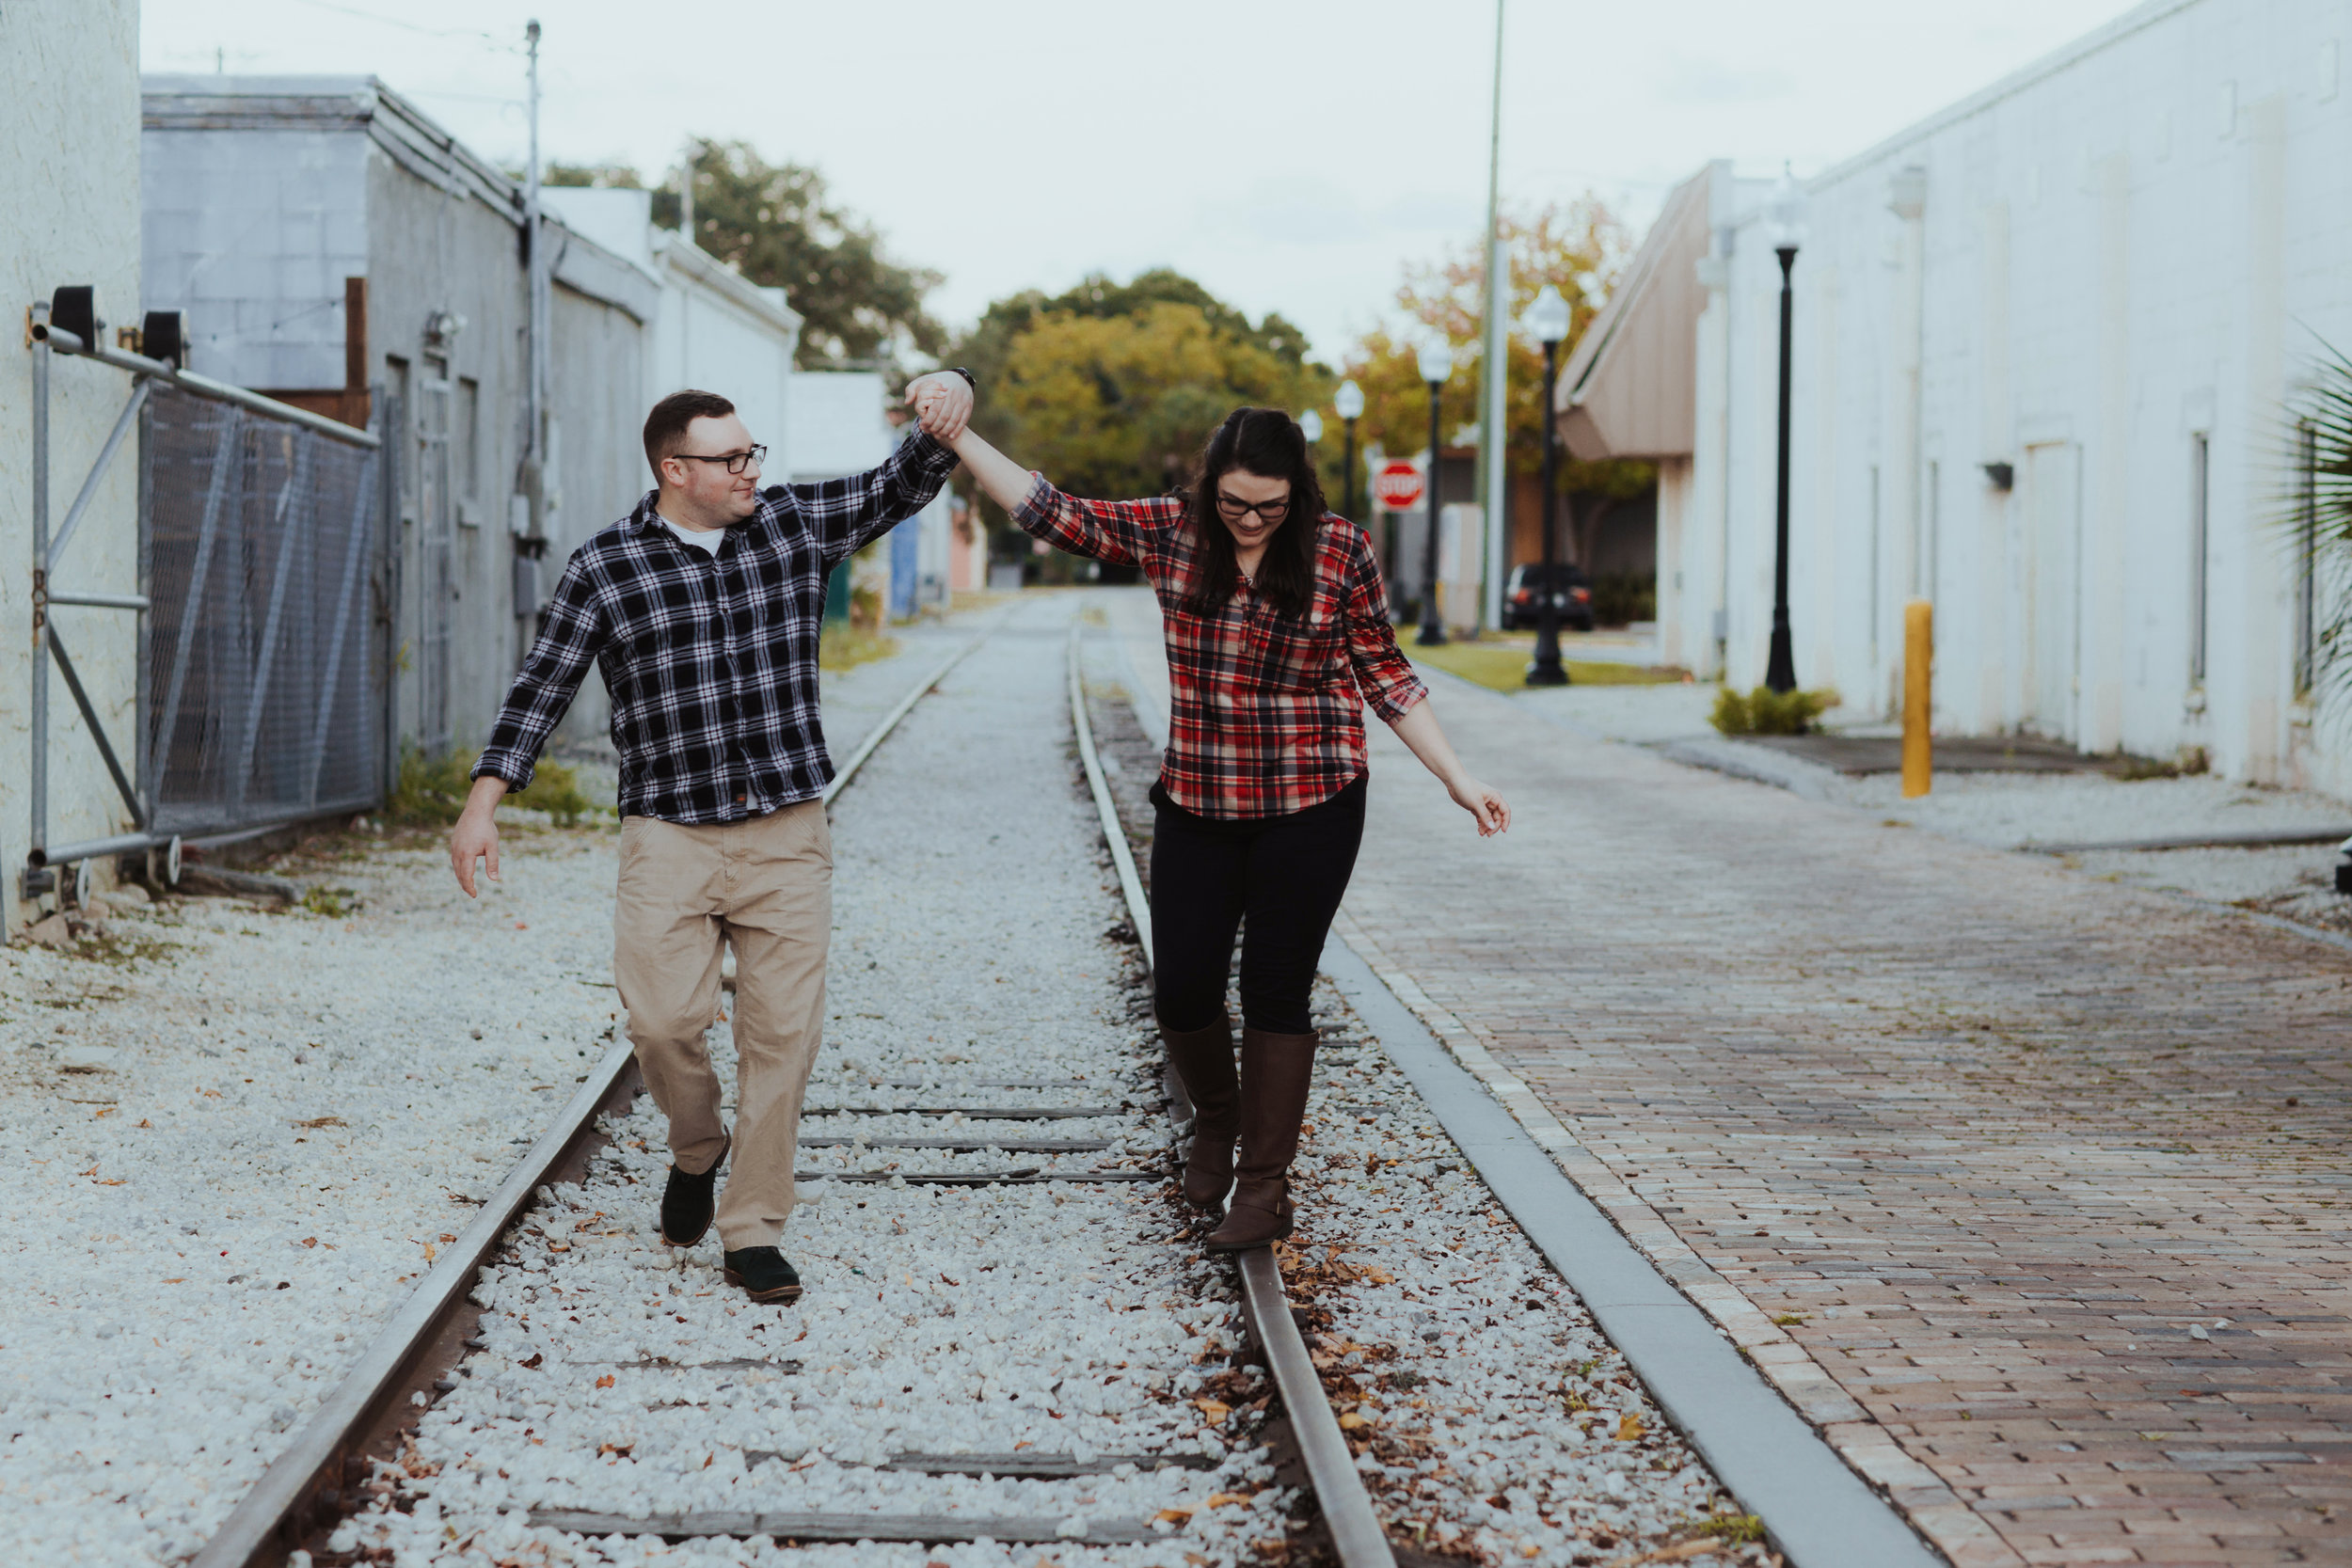 Engagement Session | Vanessa Boy |Vanessaboy.com | orlando,fl-225.com |final.jpg